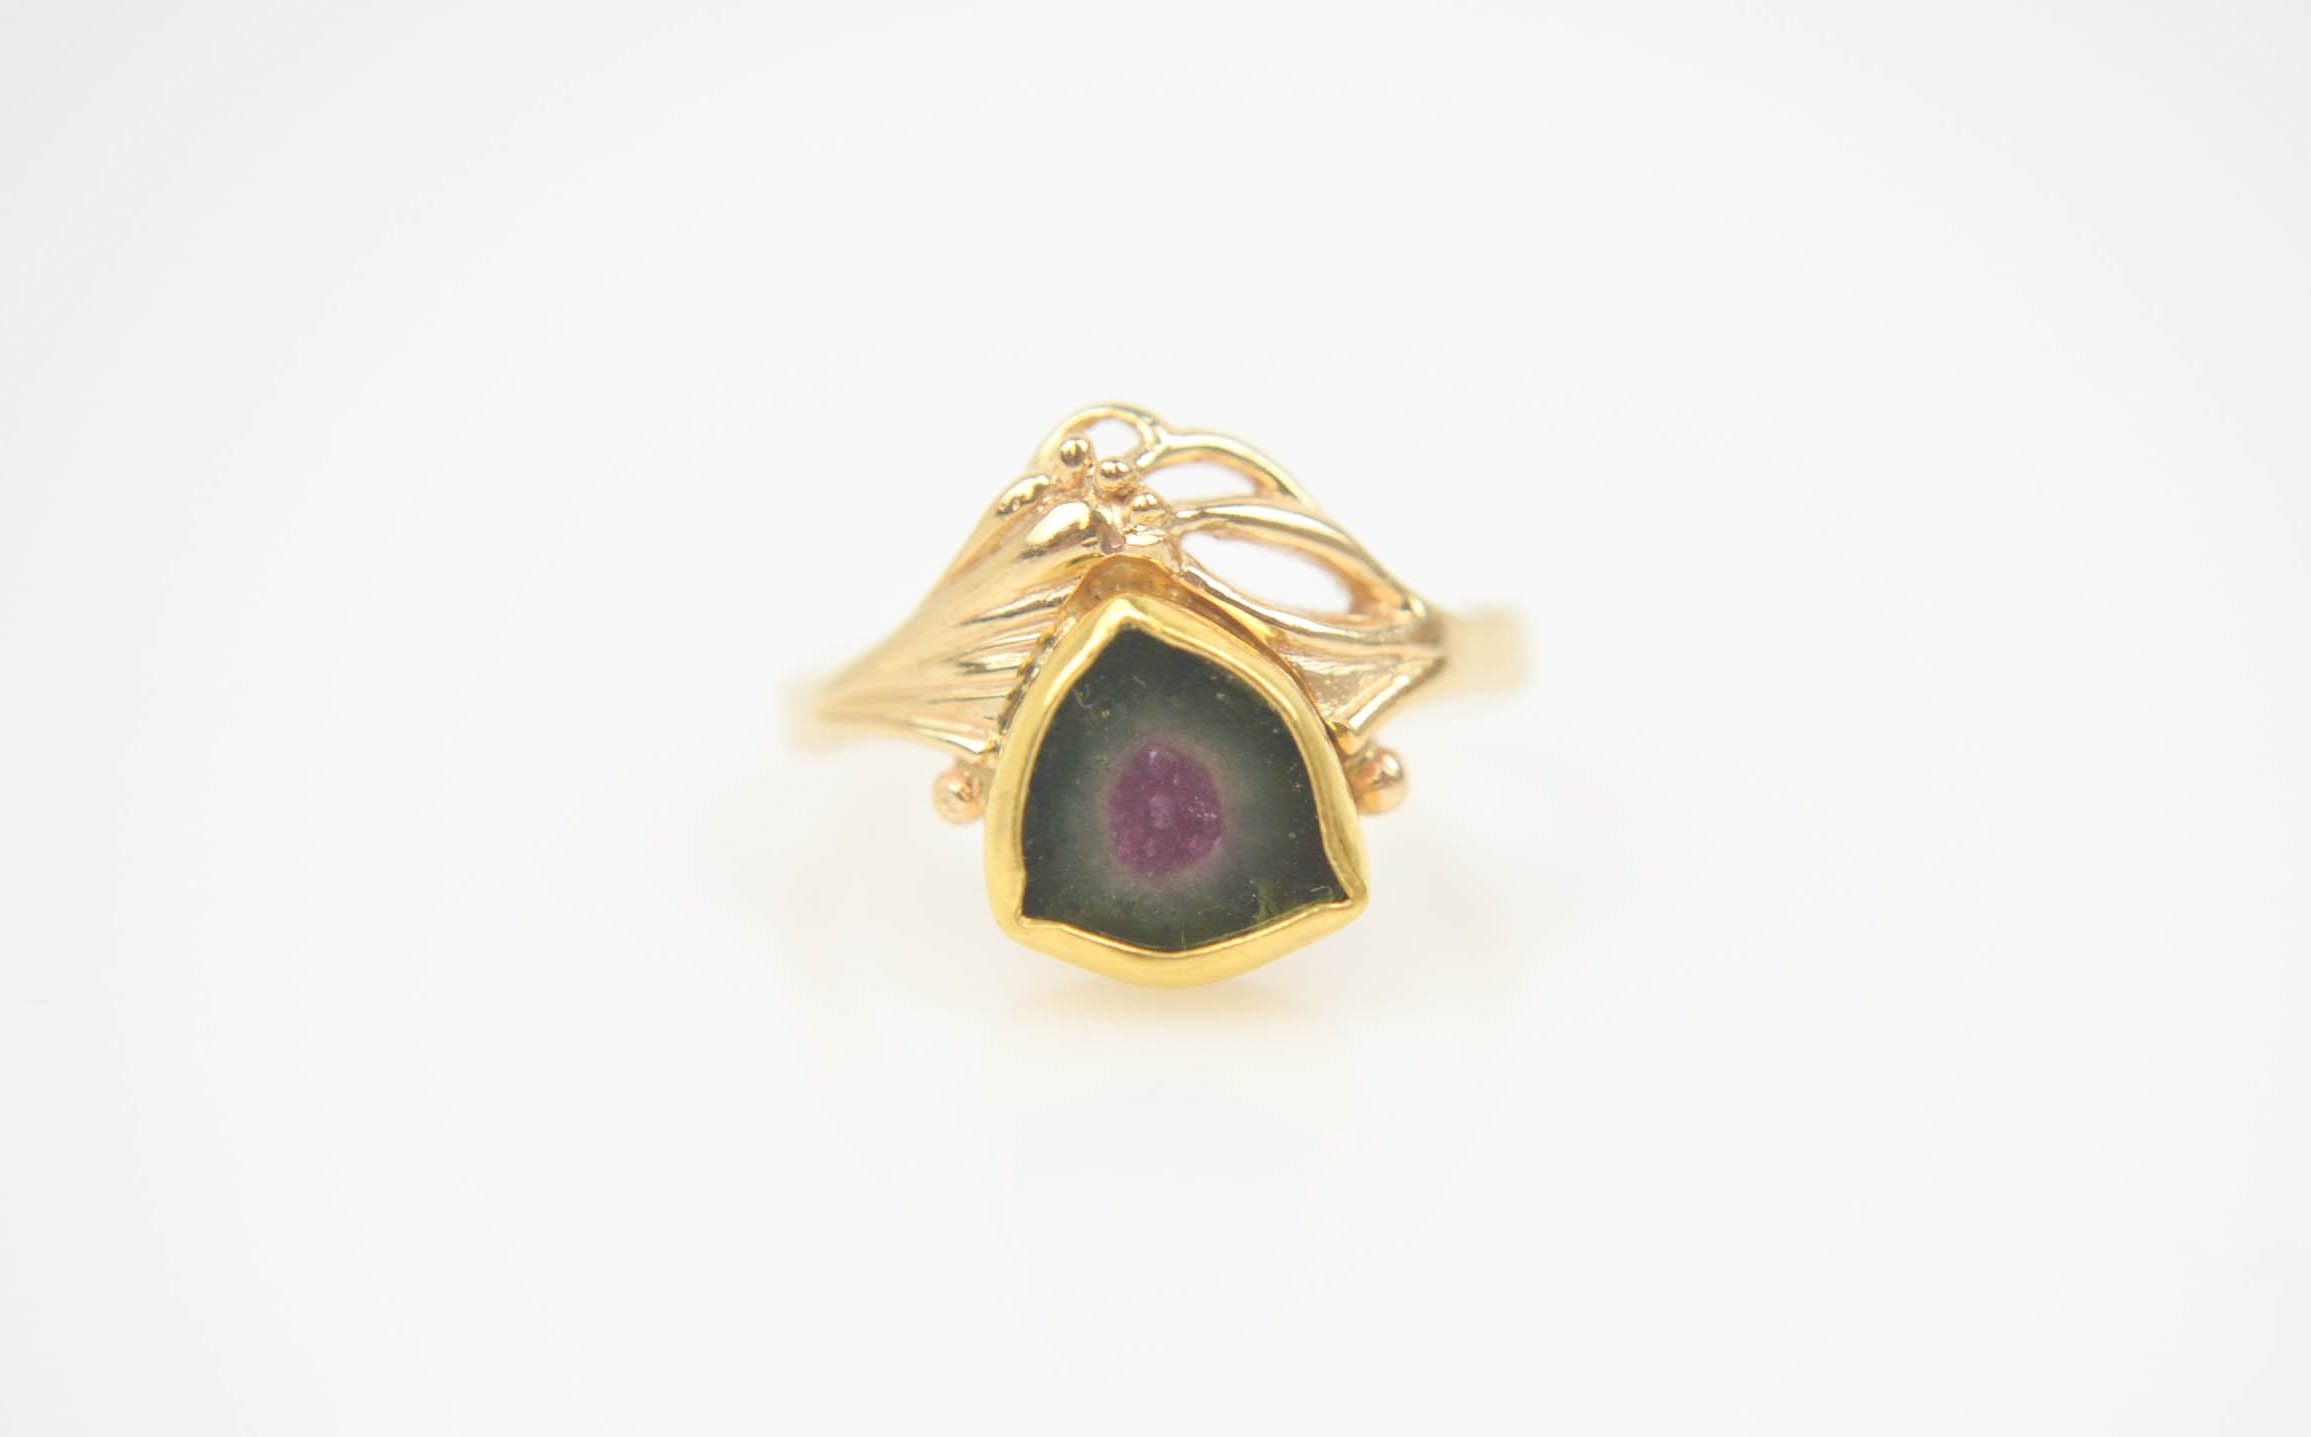 Vintage 14K and Watermelon Tourmaline Ring